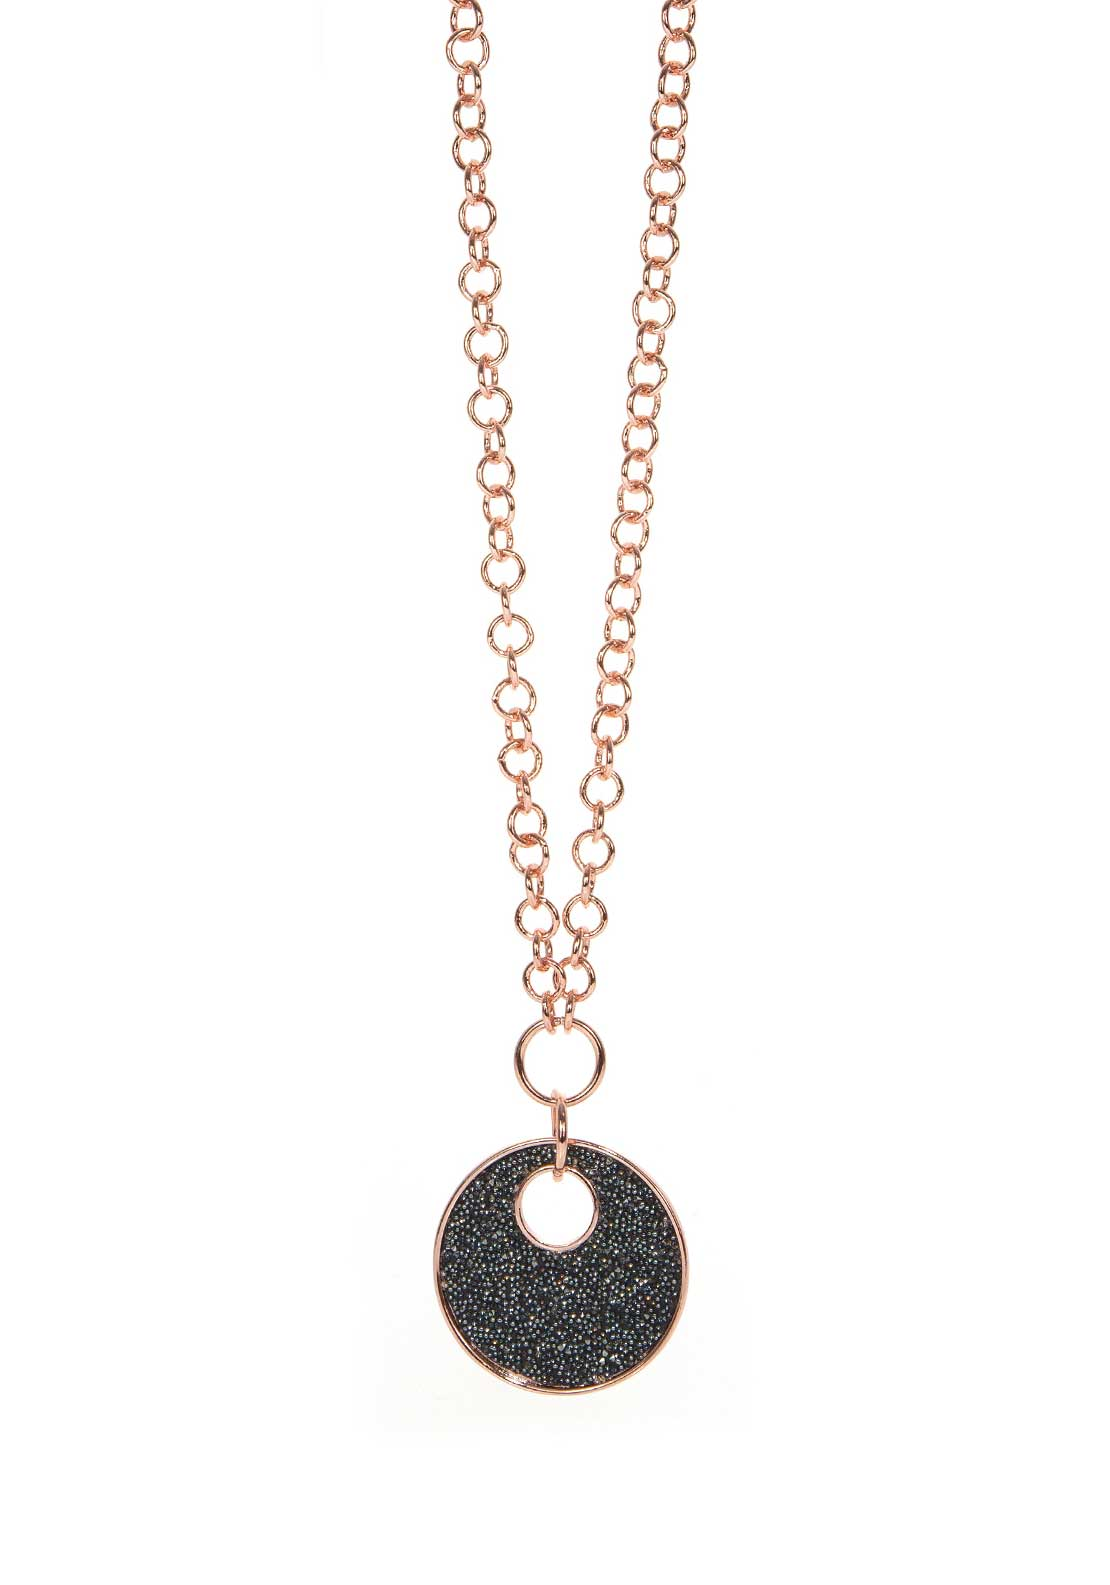 Absolute Jewellery Oynx Glittering Coin Pendant, Rose Gold